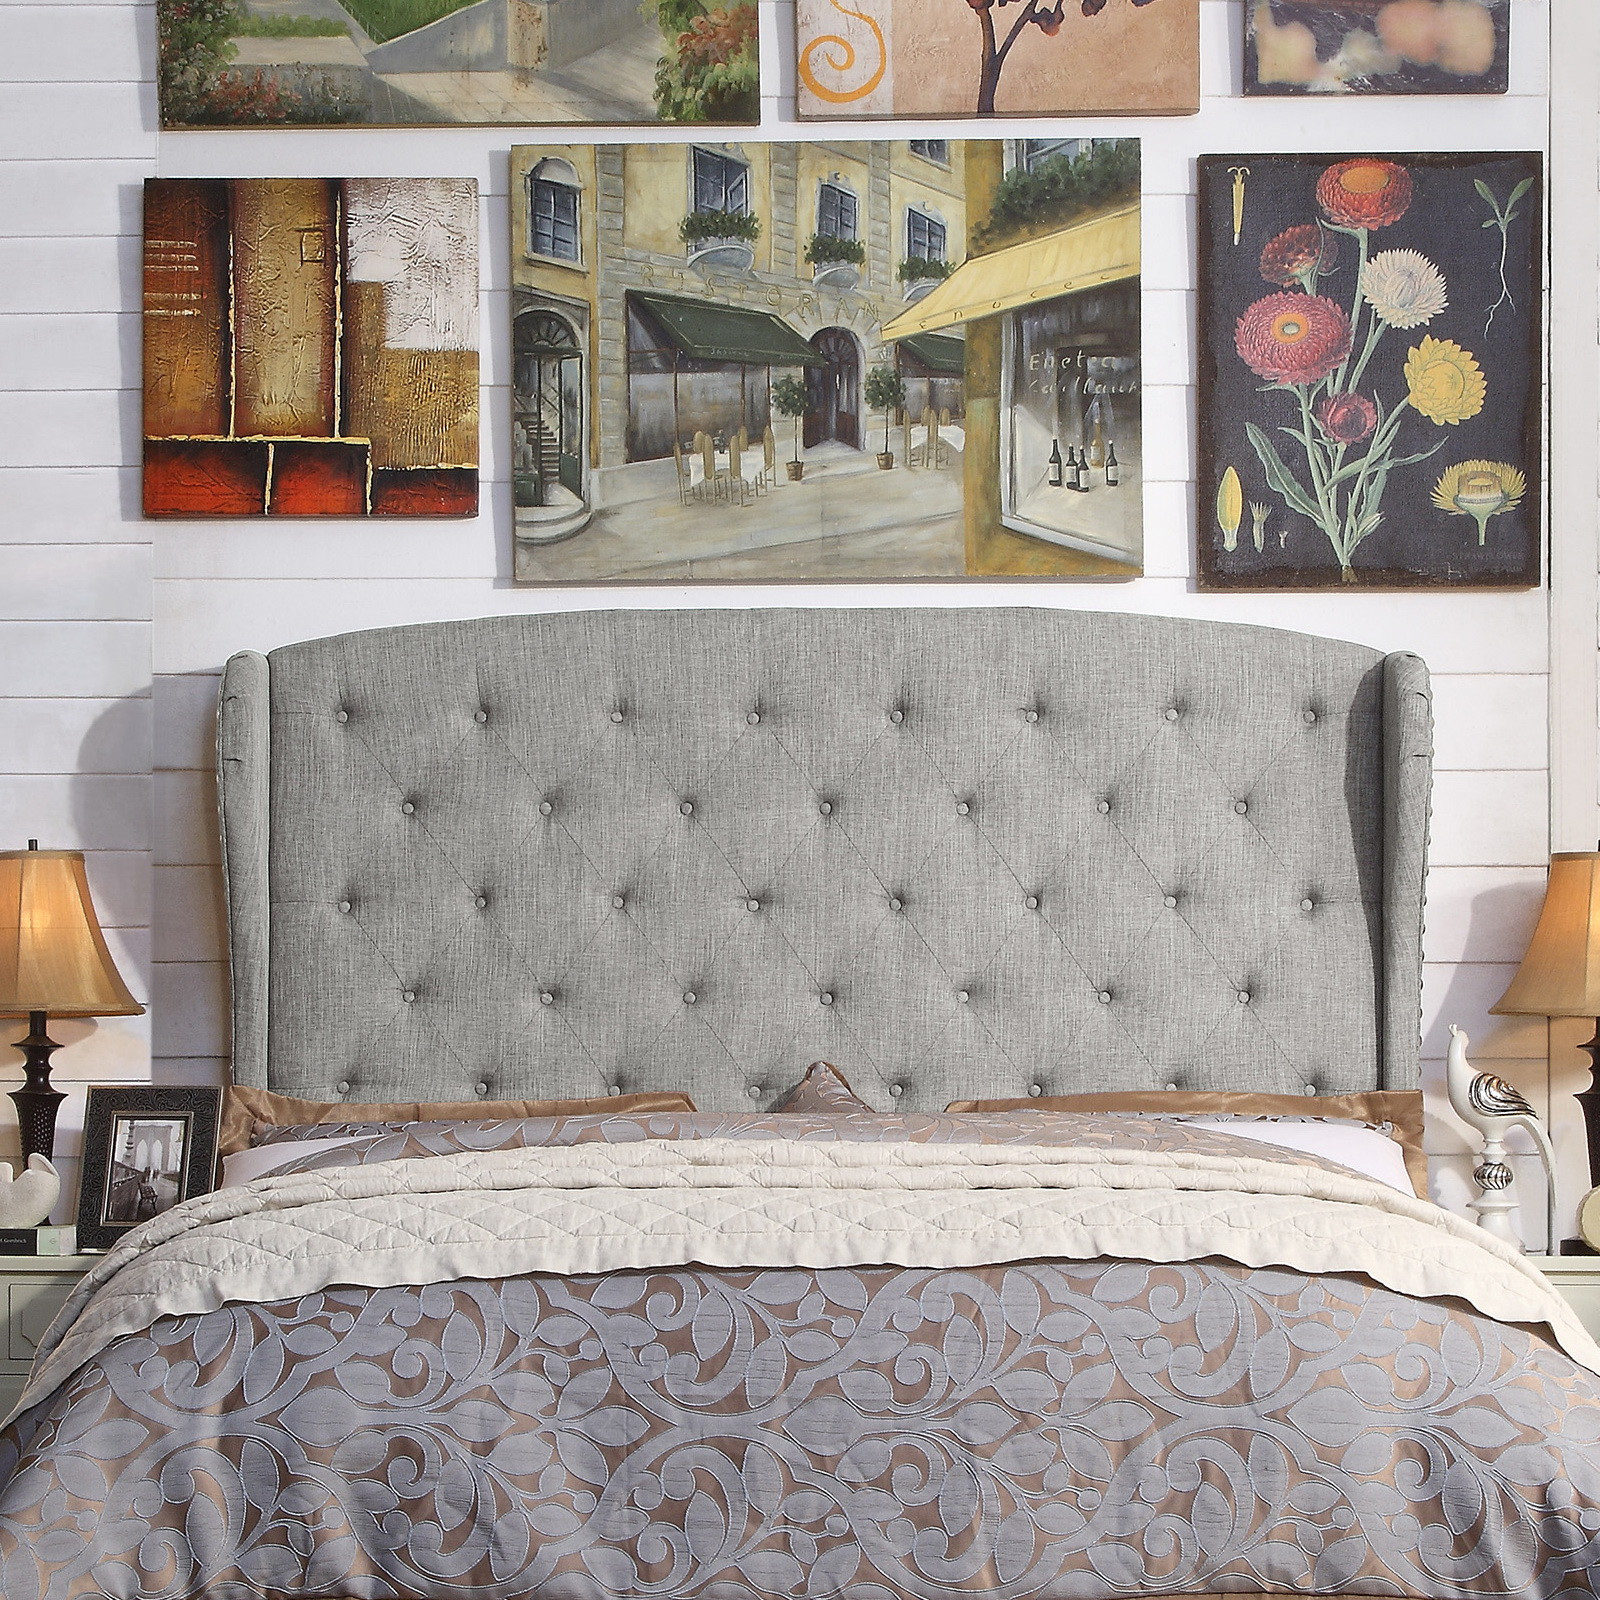 Alton Furniture Nencia Upholstered Wingback Headboard, King Grey by Fullywind